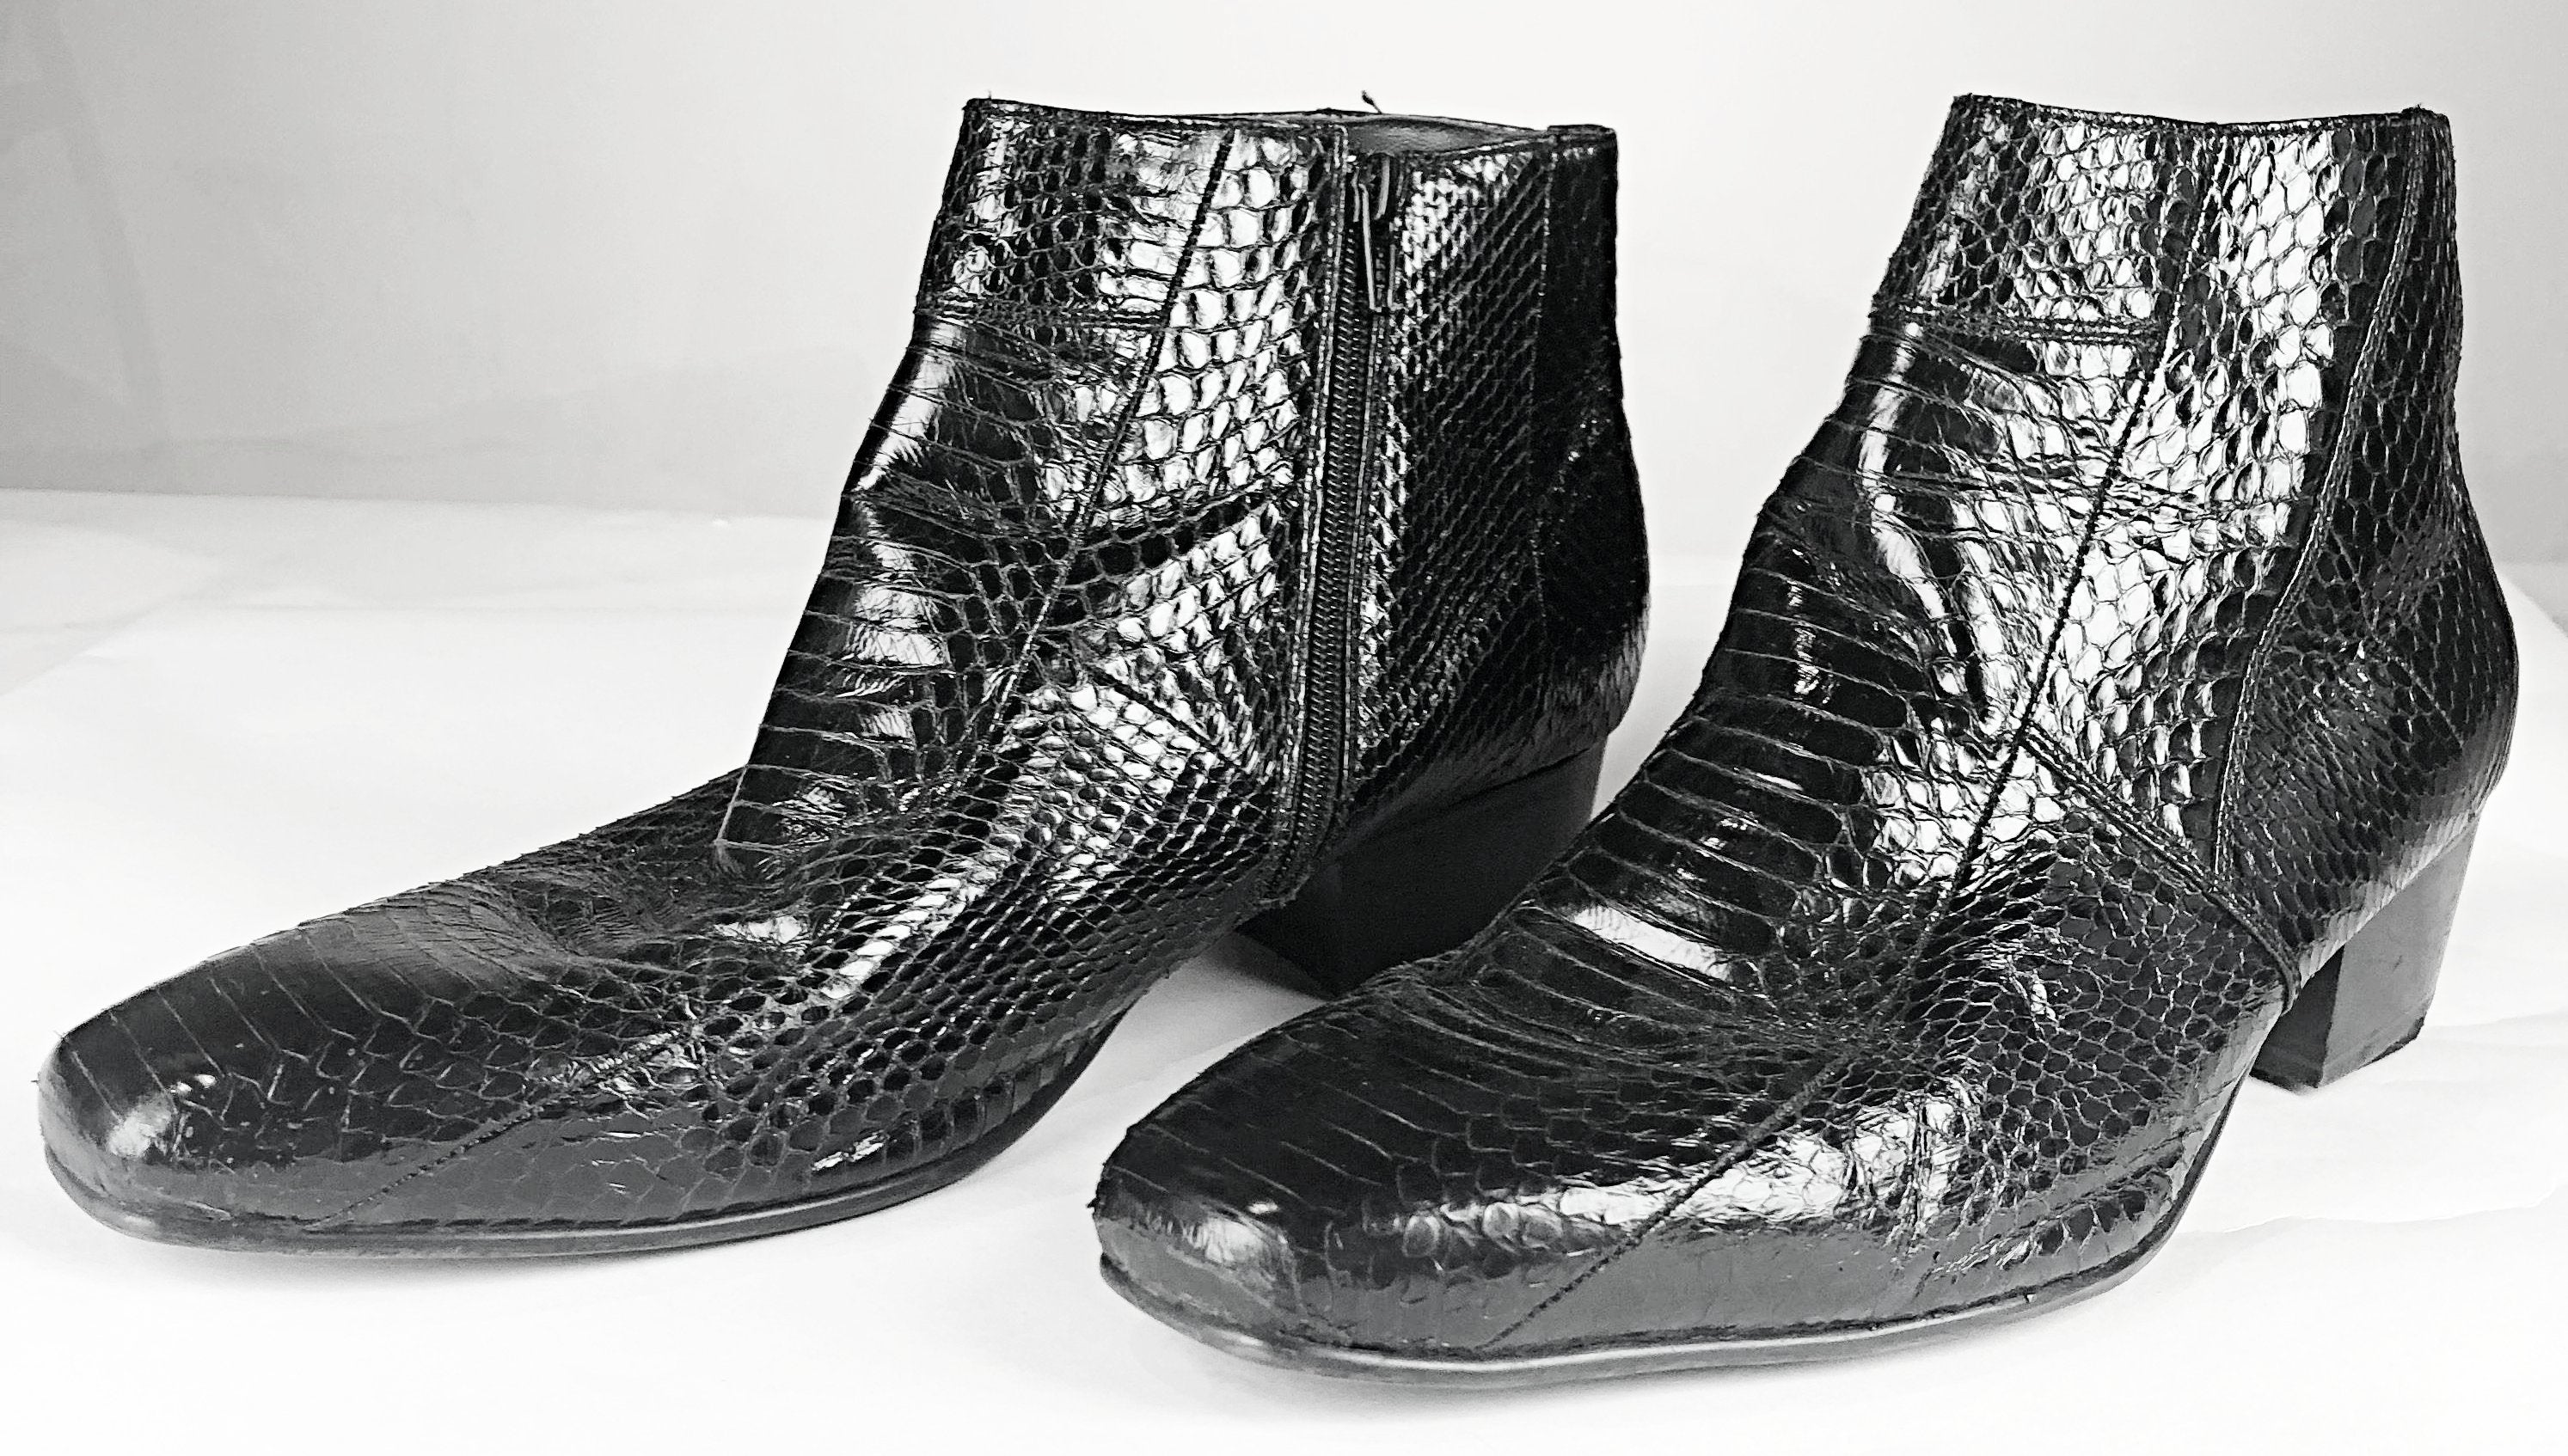 The Get Down - Jackie Moreno's Snakeskin Ankle Boots